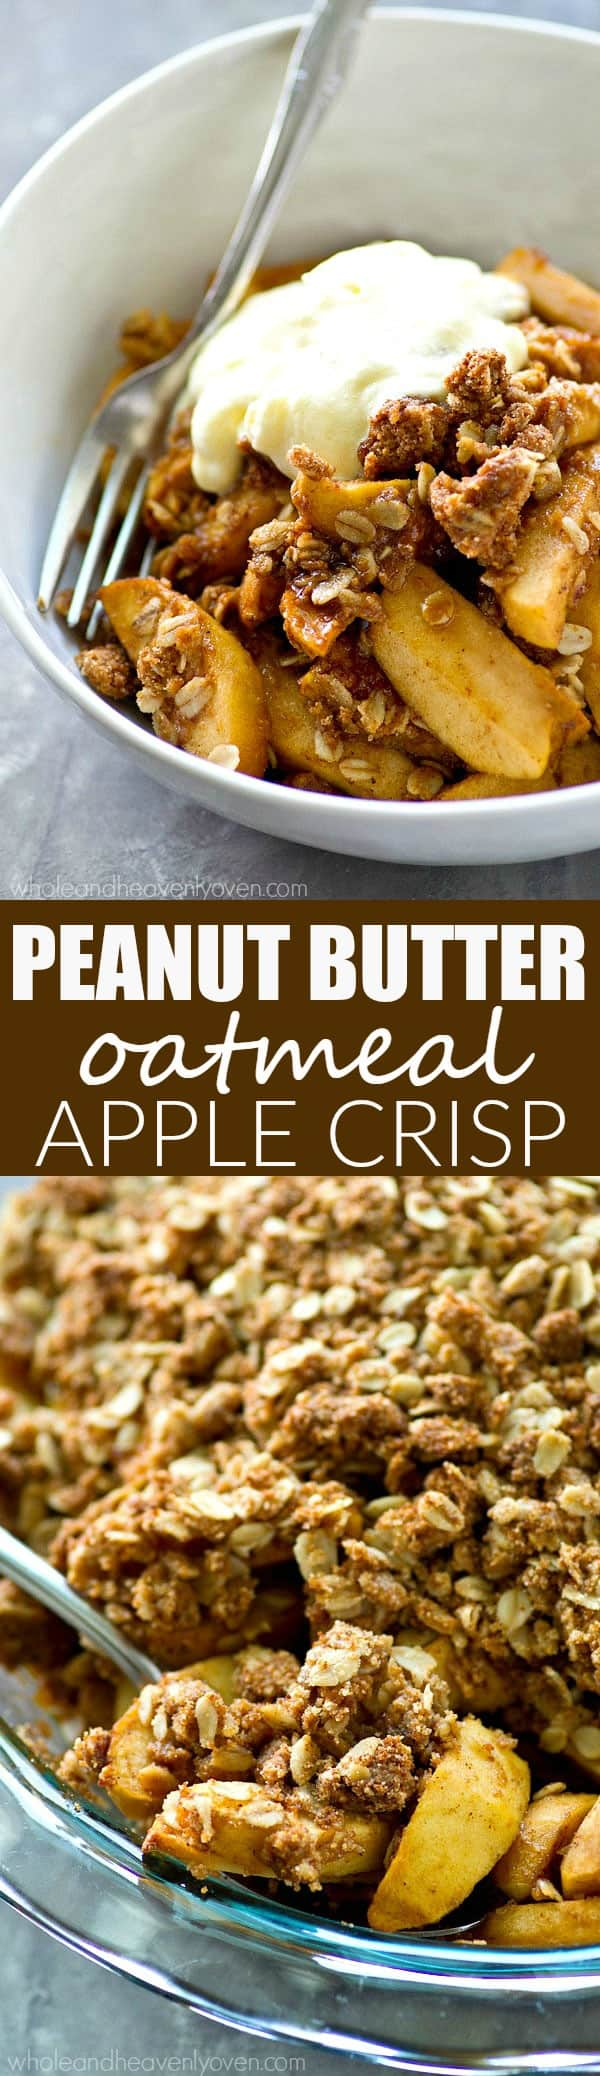 Peanut butter and apples are a killer combination that you won't want to miss out on in this insanely-good apple crisp! Serve warm with lots of whipped cream or ice cream.